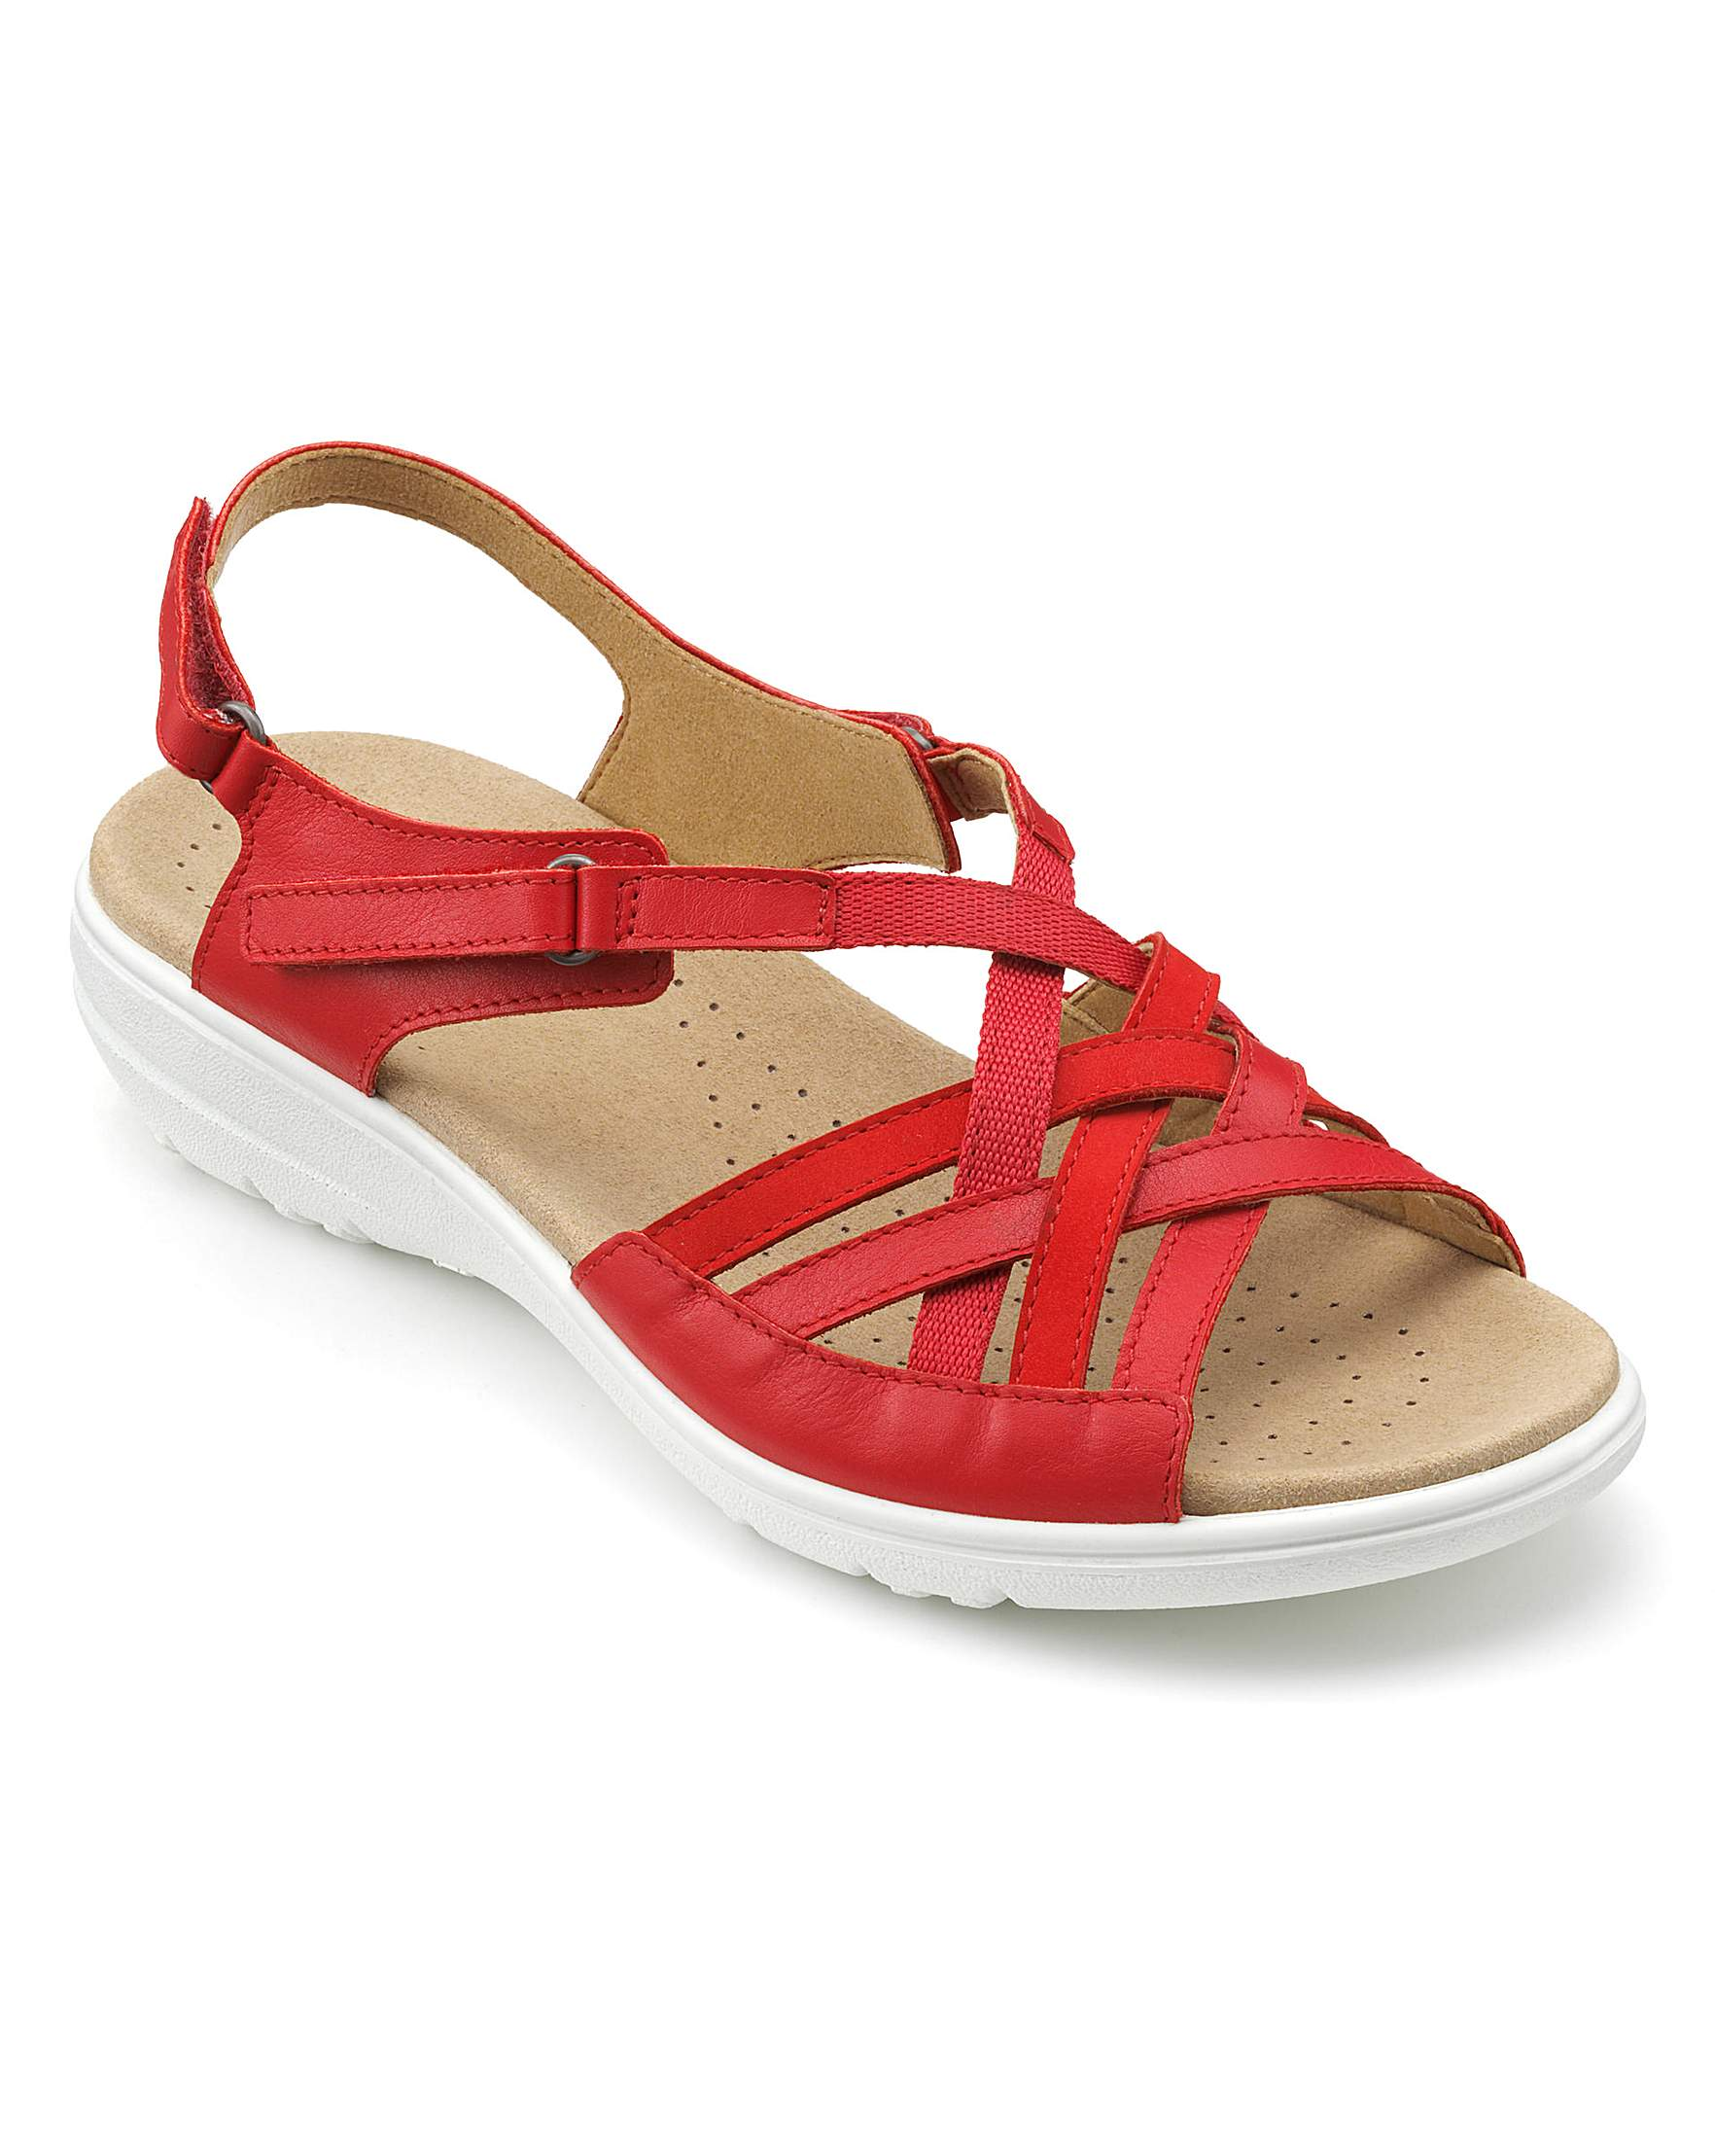 a6713cb7 Hotter Maisie Standard Fit Sandal | Oxendales